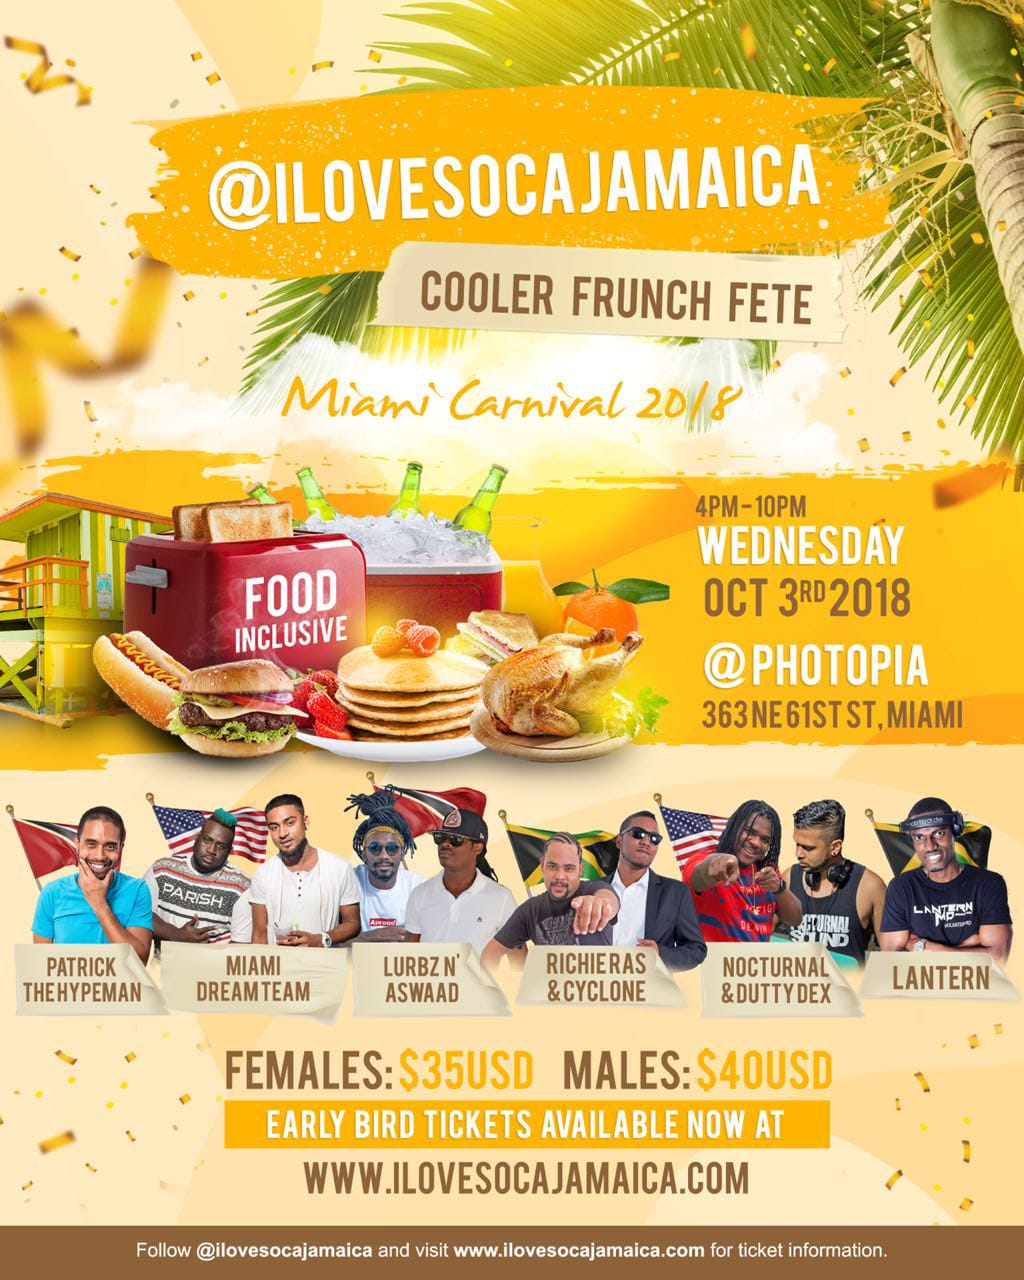 I Love Soca Jamaica Cooler Frunch Fete